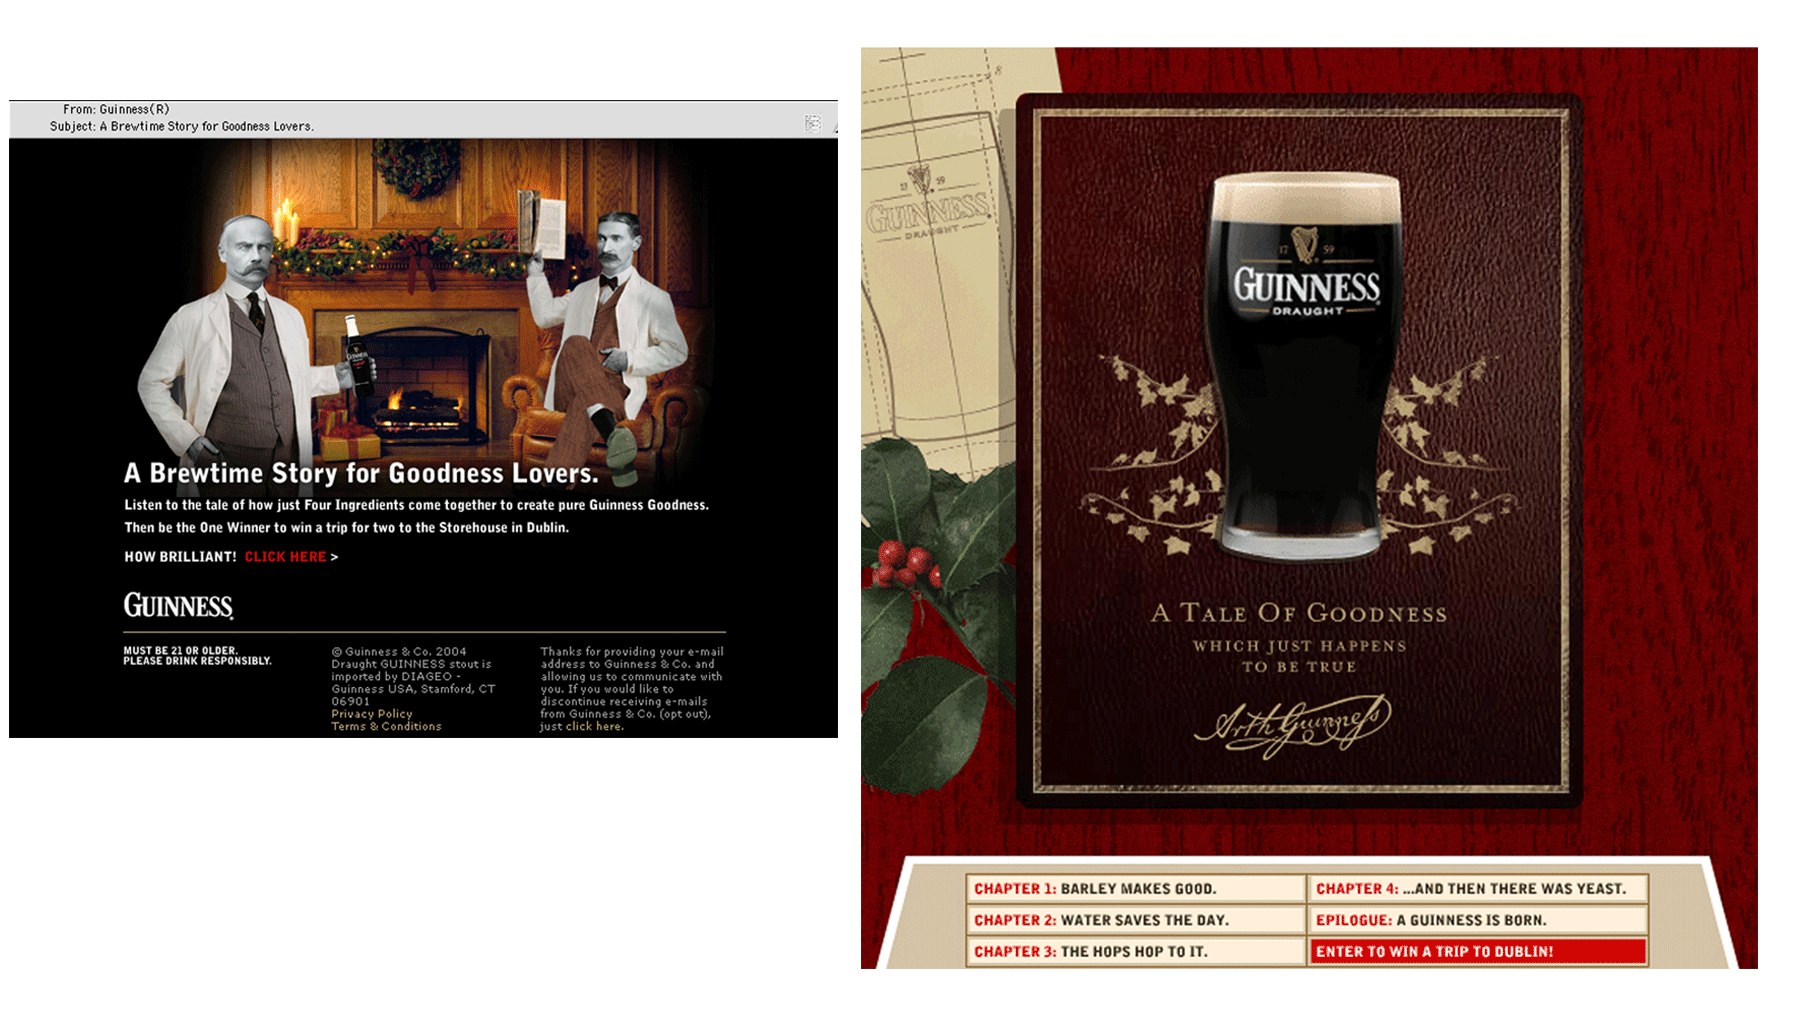 GUINNESS - Email Holiday Touch (Caples Winner)